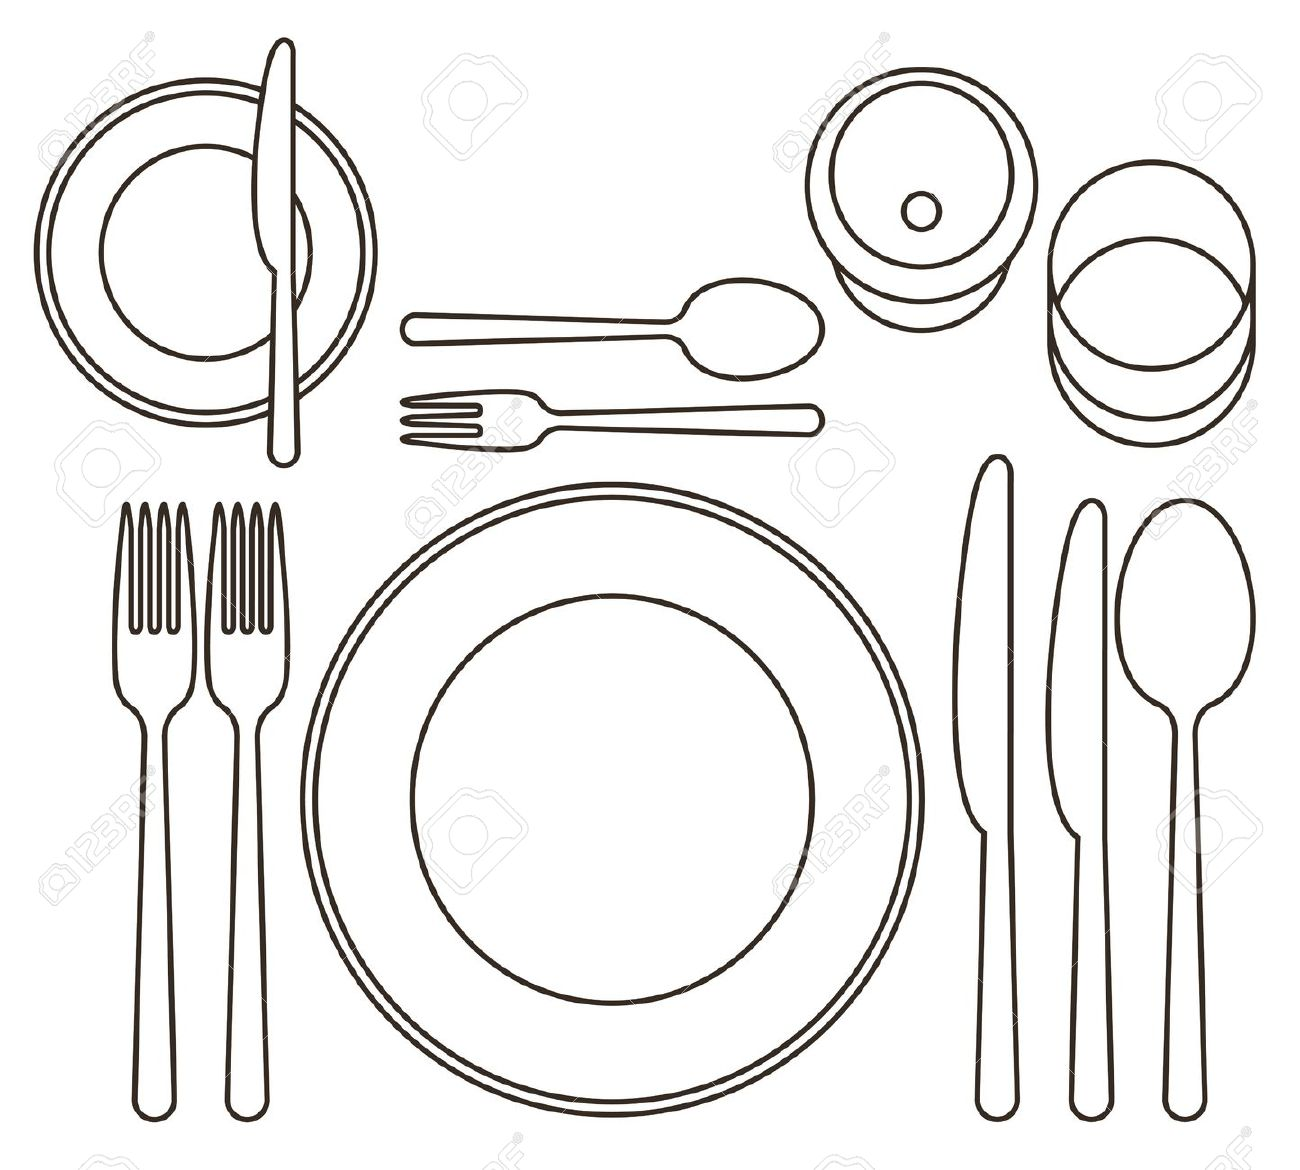 Community meal place setting clipart.